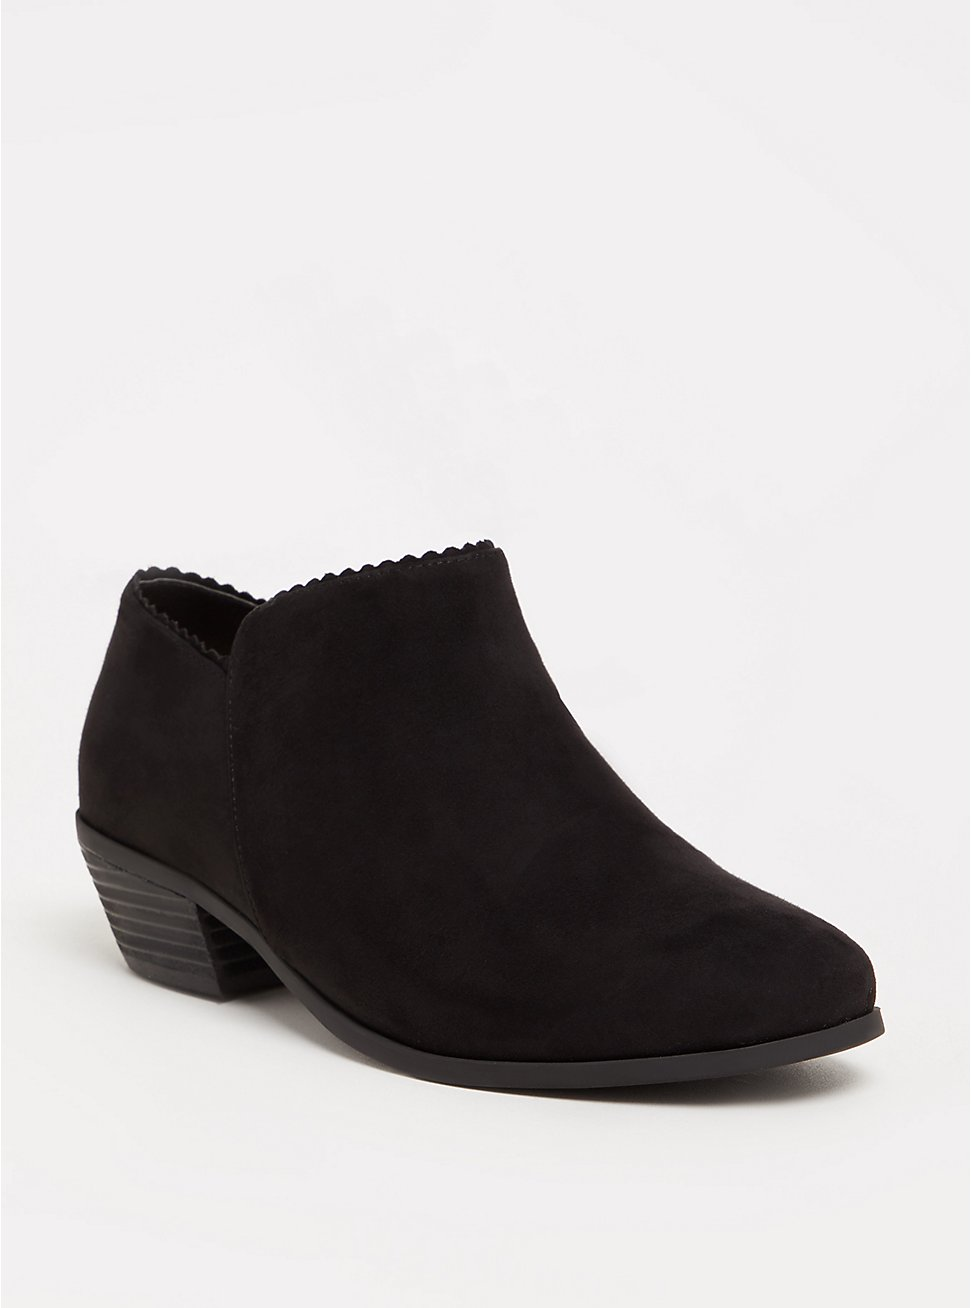 Plus Size Black Scalloped Ankle Boot (WW), BLACK, hi-res